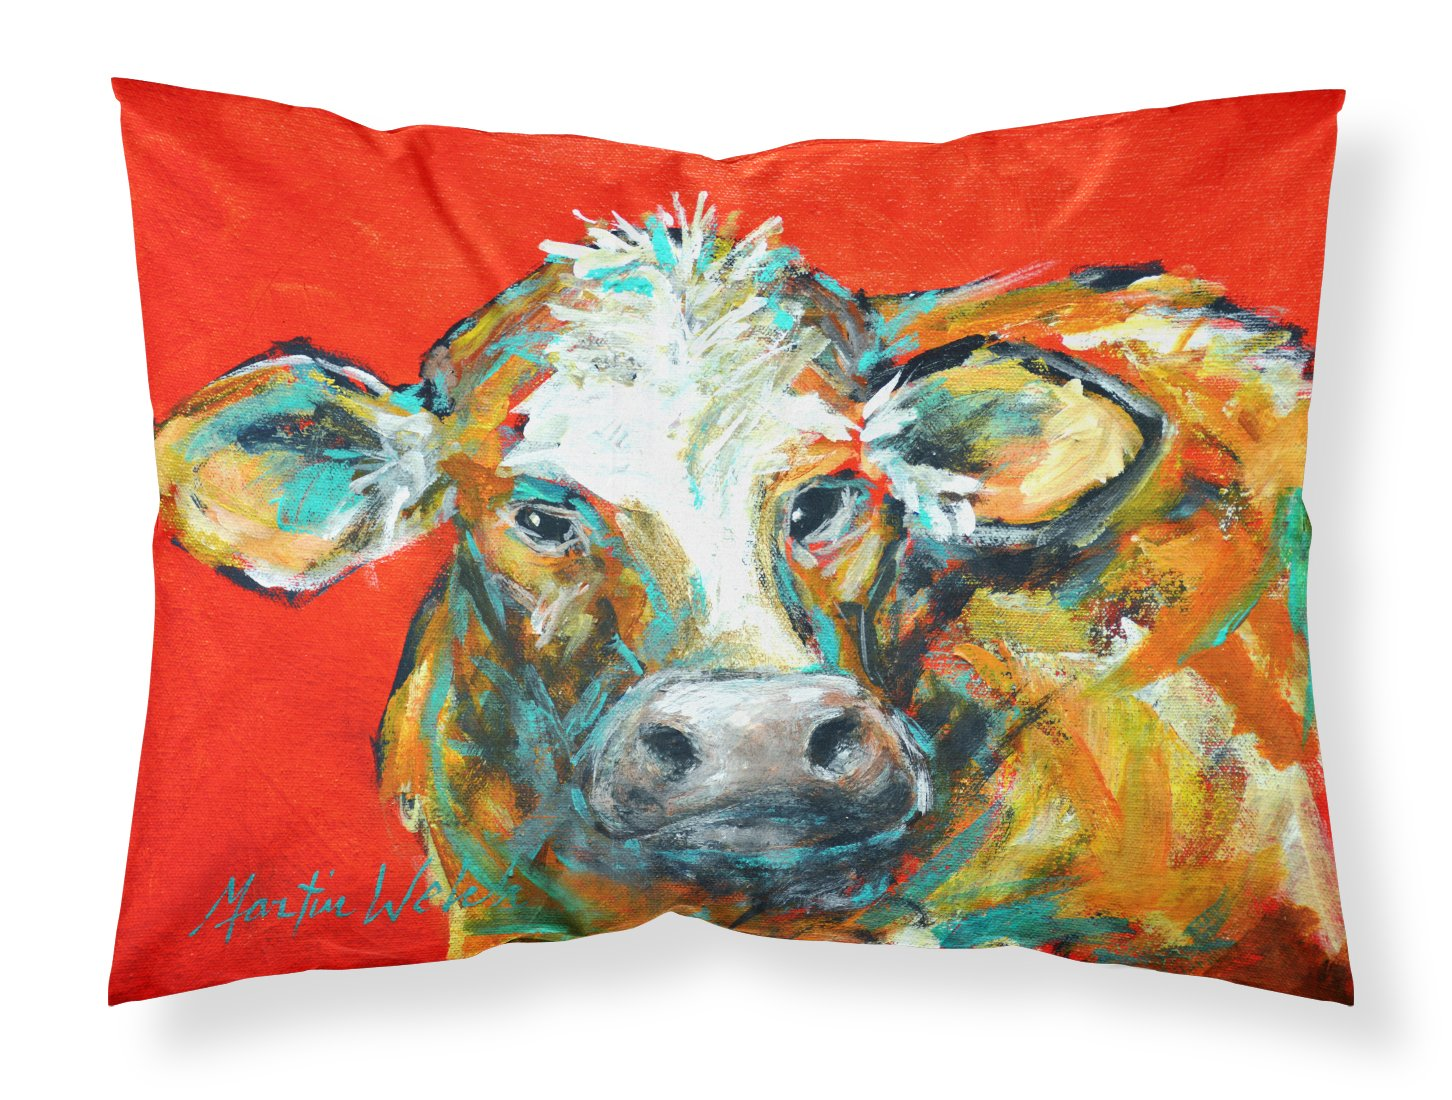 Buy this Caught Red Handed Cow Fabric Standard Pillowcase MW1272PILLOWCASE